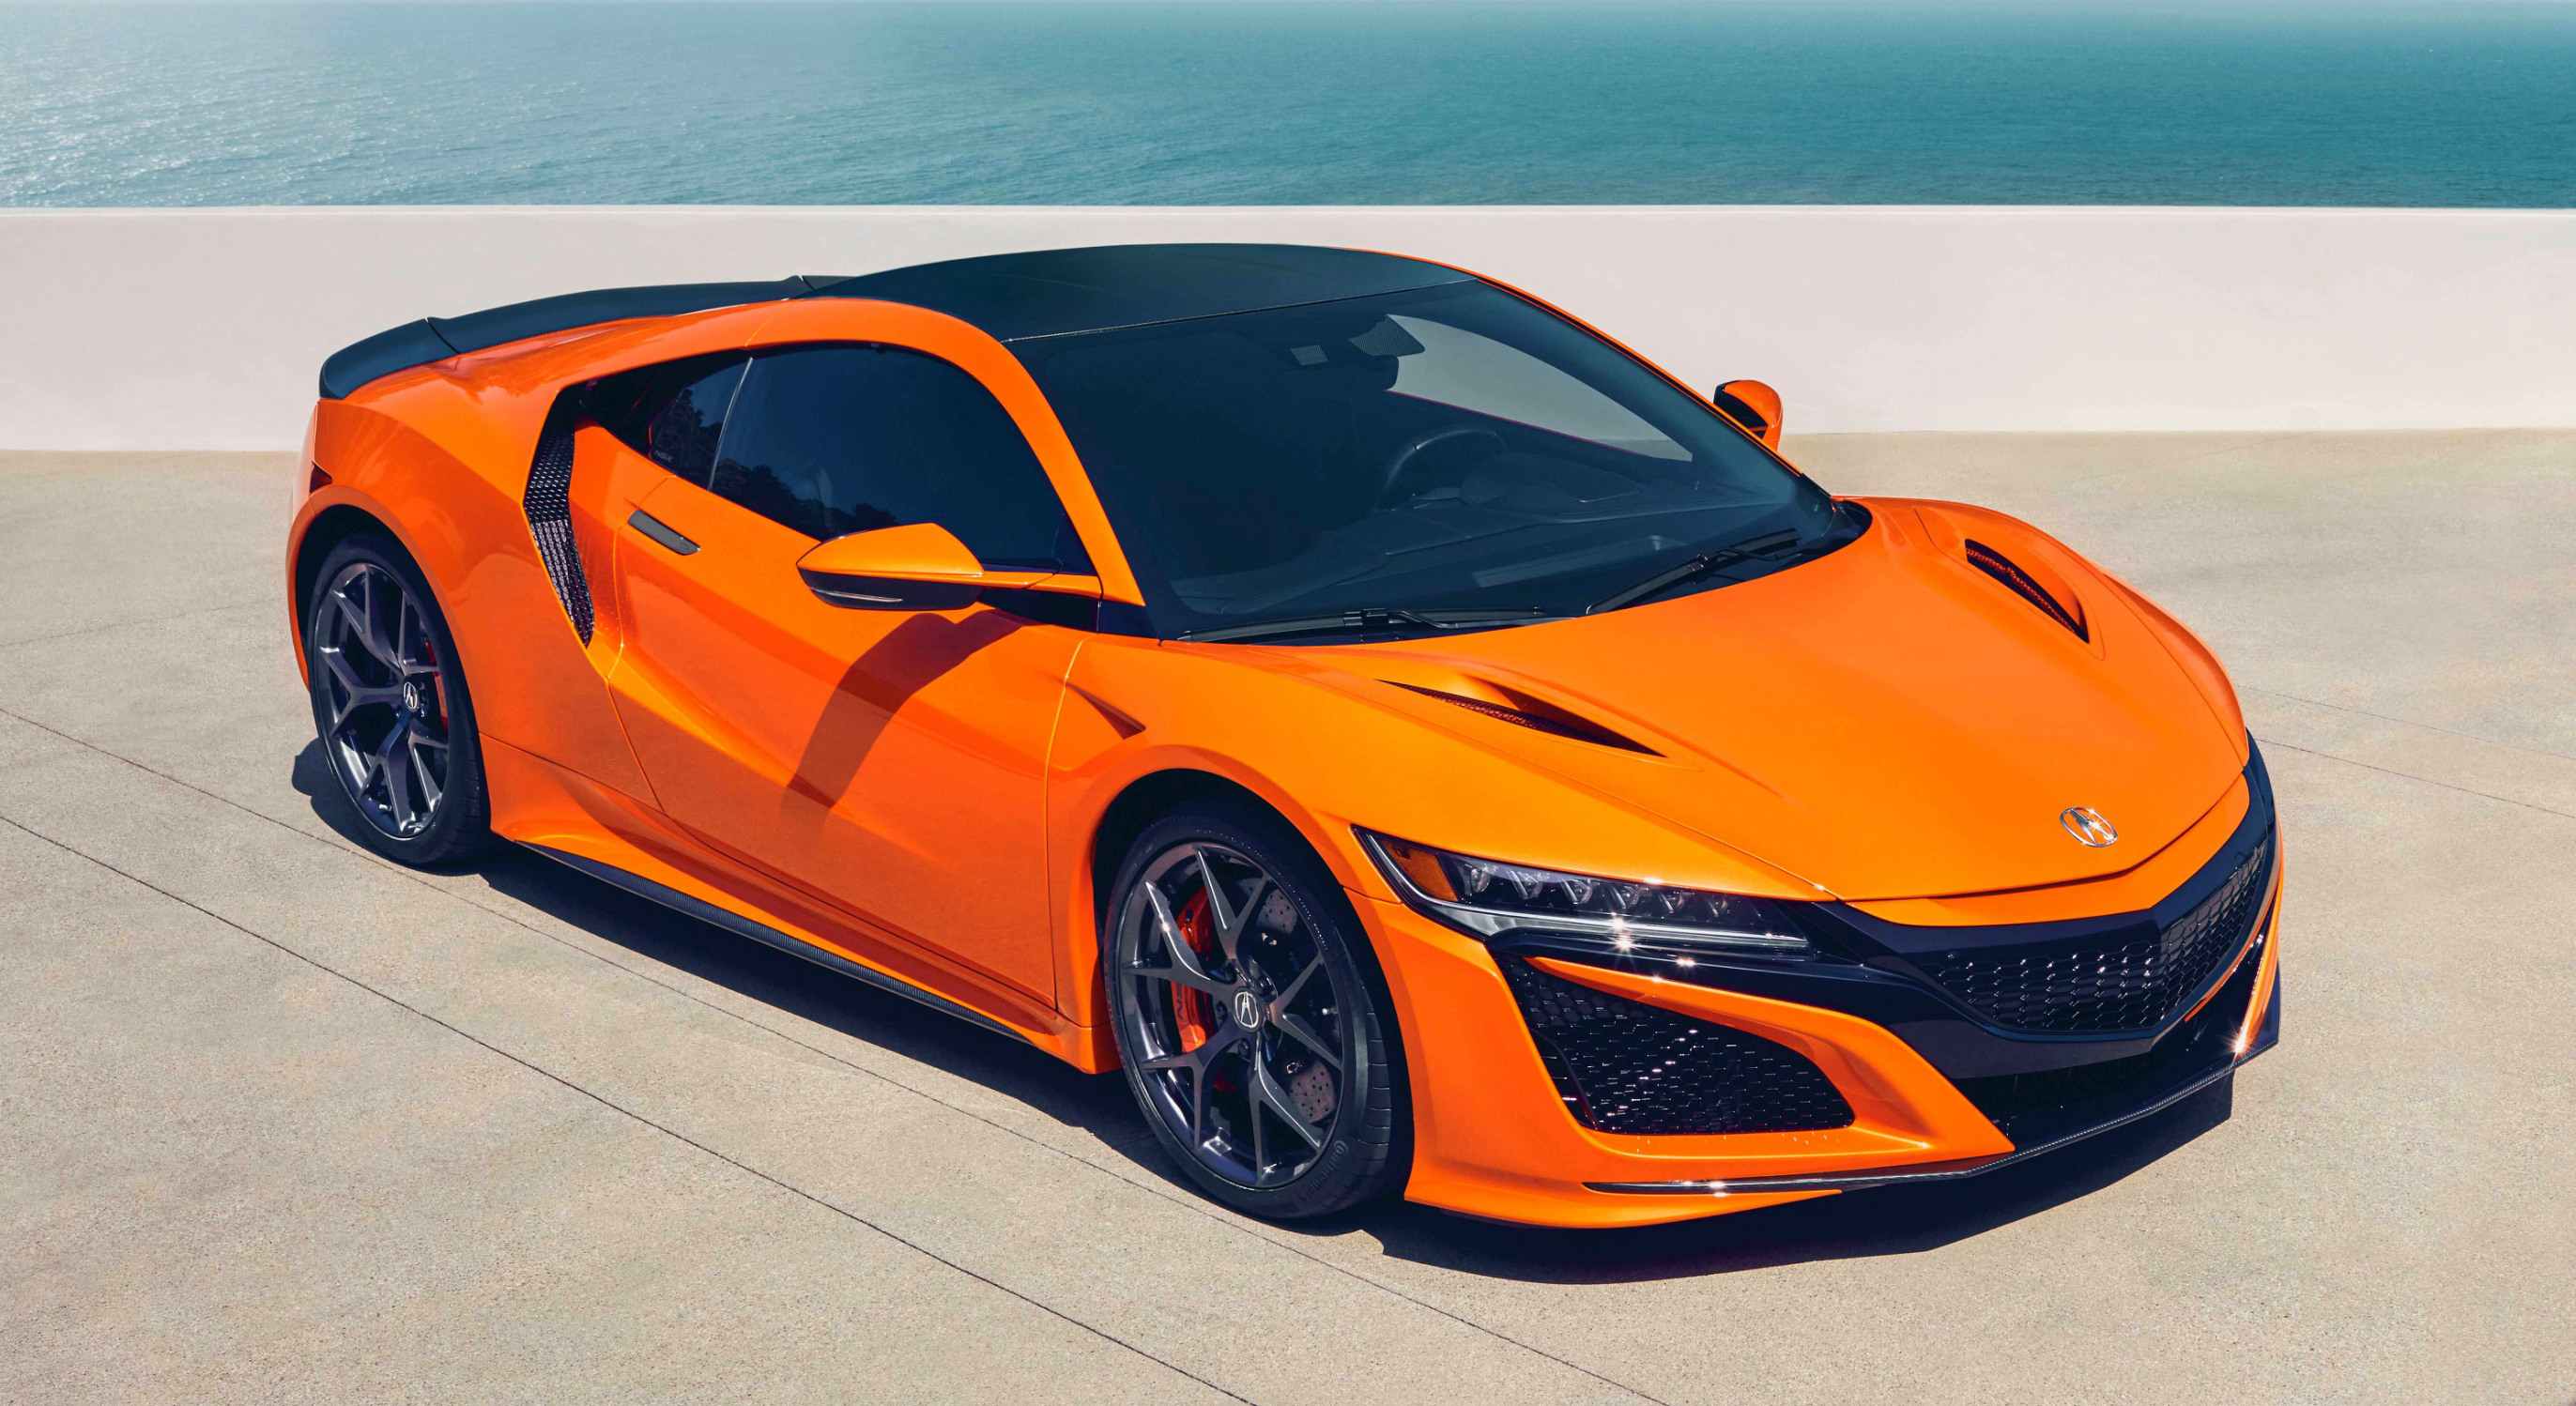 The Dynamic Handling Performance Of Honda Nsx Has Been Improved By Chis Upgrades New